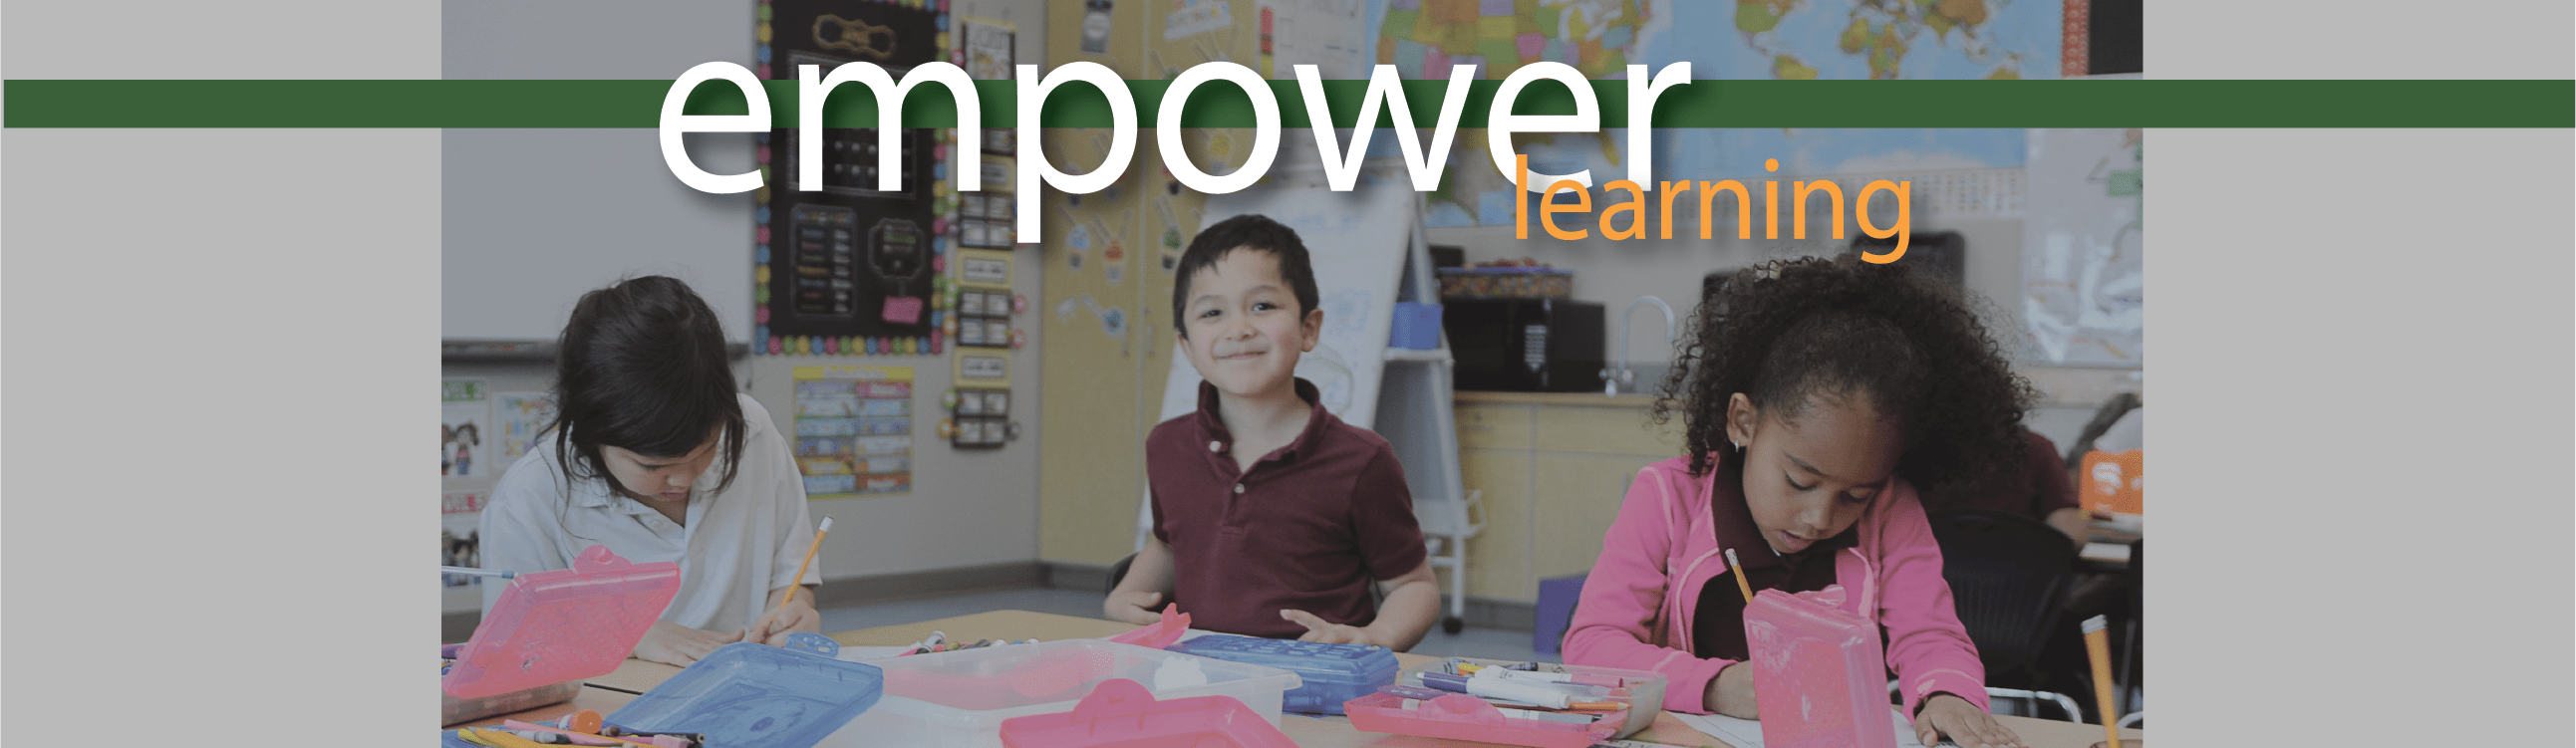 Empower learning at High Point Academy